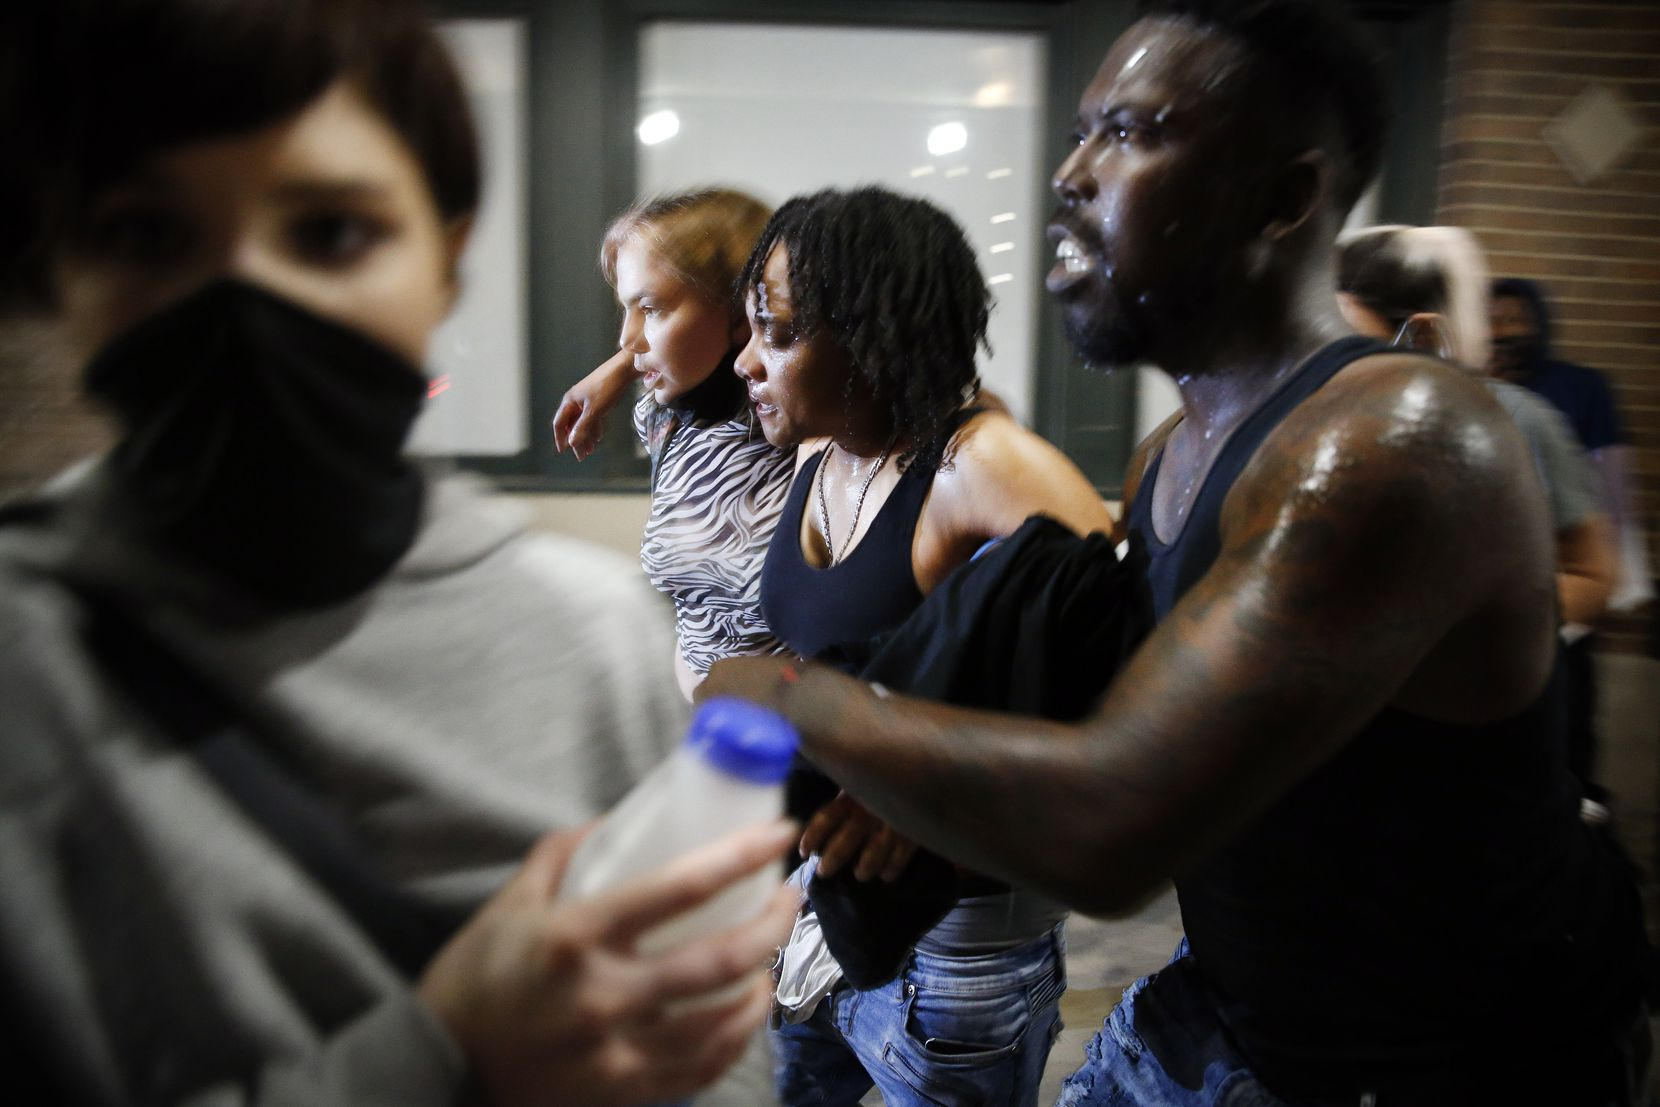 A female protestor (center) is helped to her feet after she was hit by a projectile as they were confronted by Dallas Police tactical officers at Wood St. and S. Lamar St. in downtown Dallas, Friday, May 29 2020. People were marching in protest of the in-custody death of George Floyd when they confronted Dallas Police tactical officers and tear gas was fired.